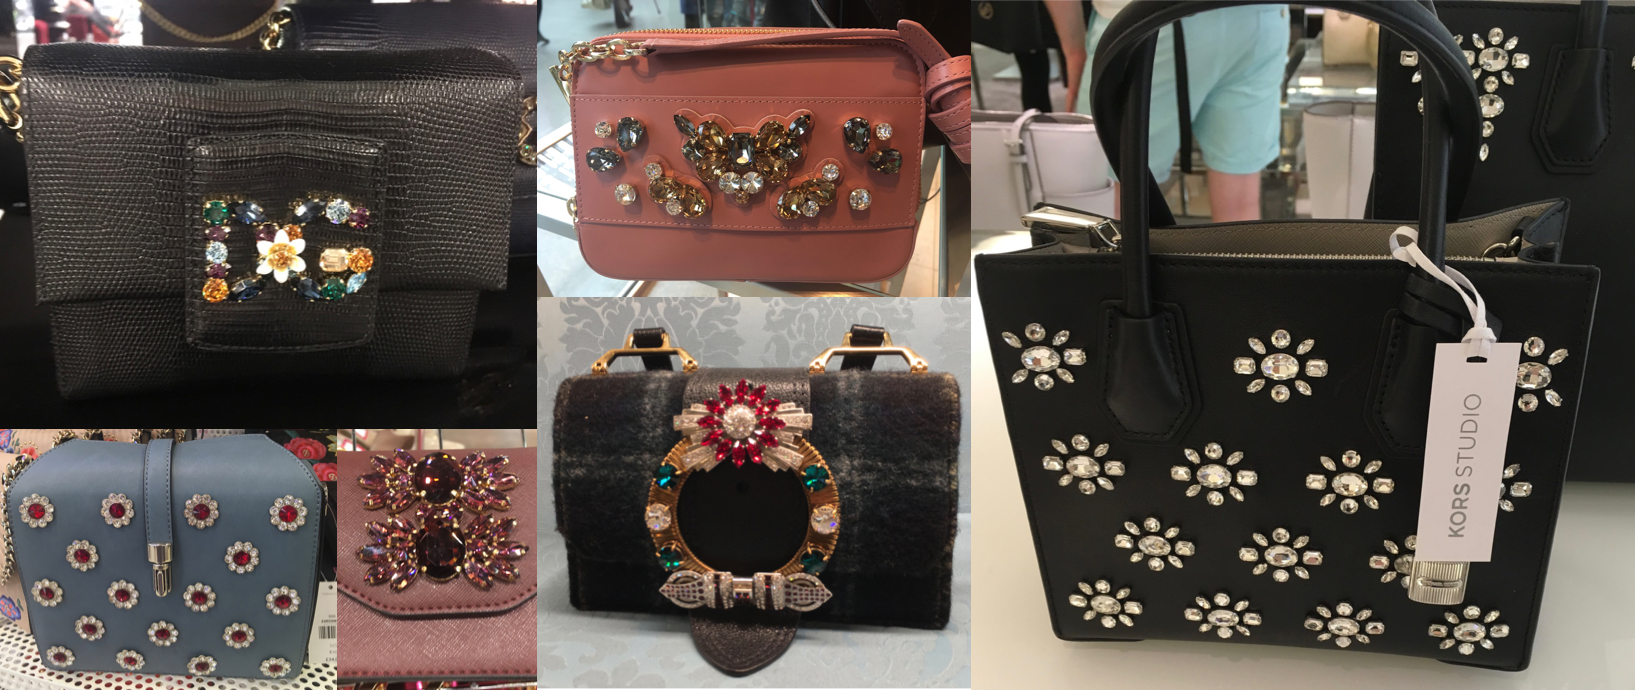 jewelled bags